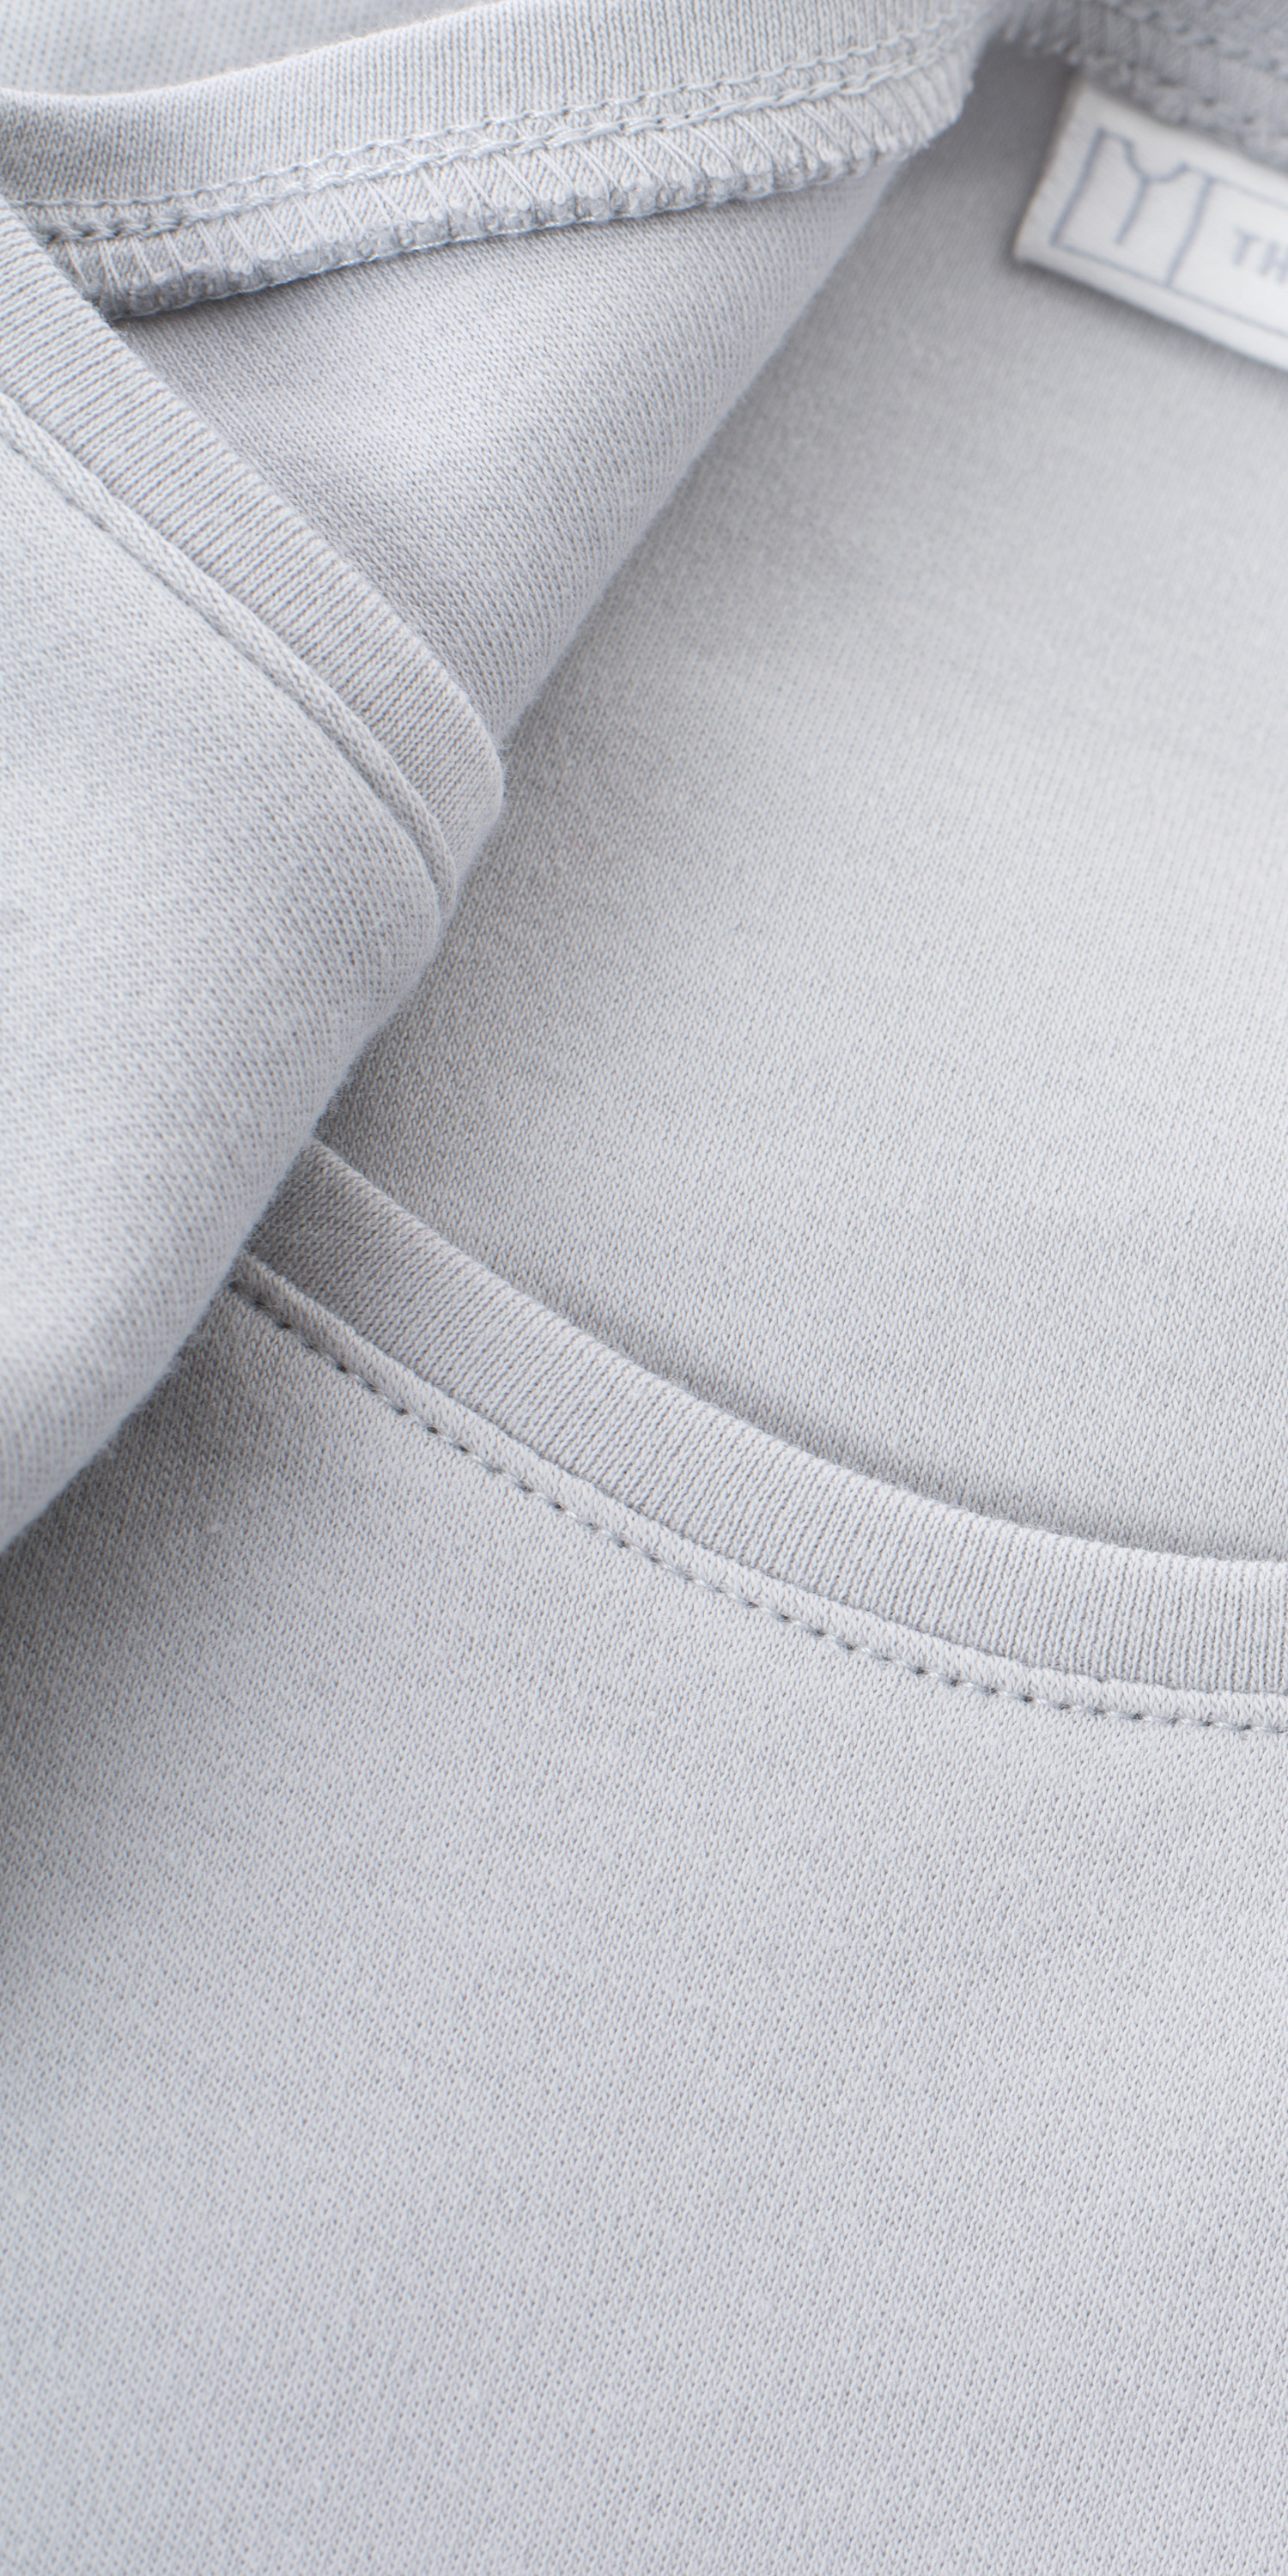 white-organic-cotton-nightie-neck-detail